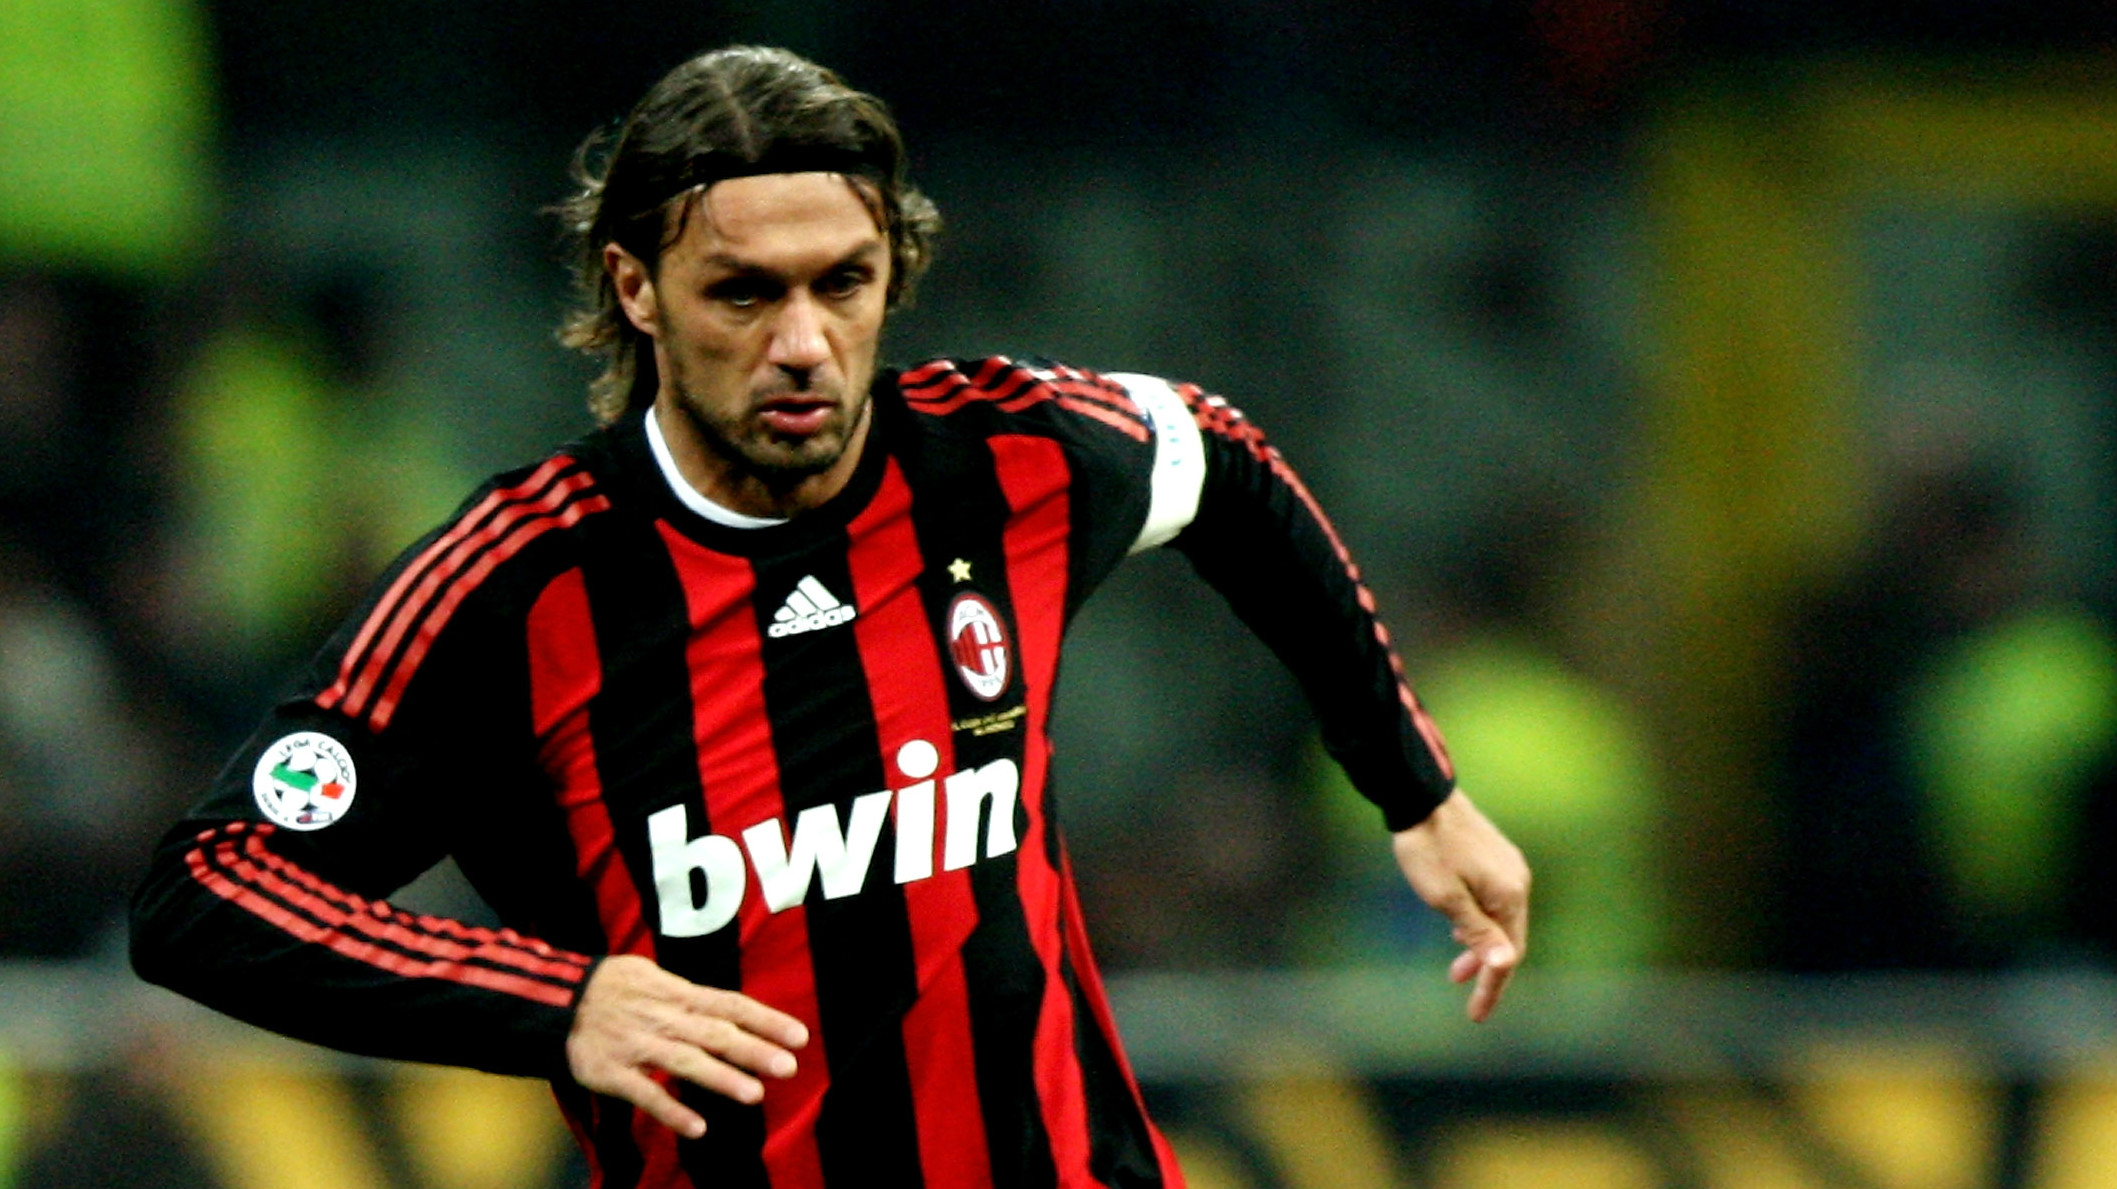 paolo maldini 2012 hd - photo #12